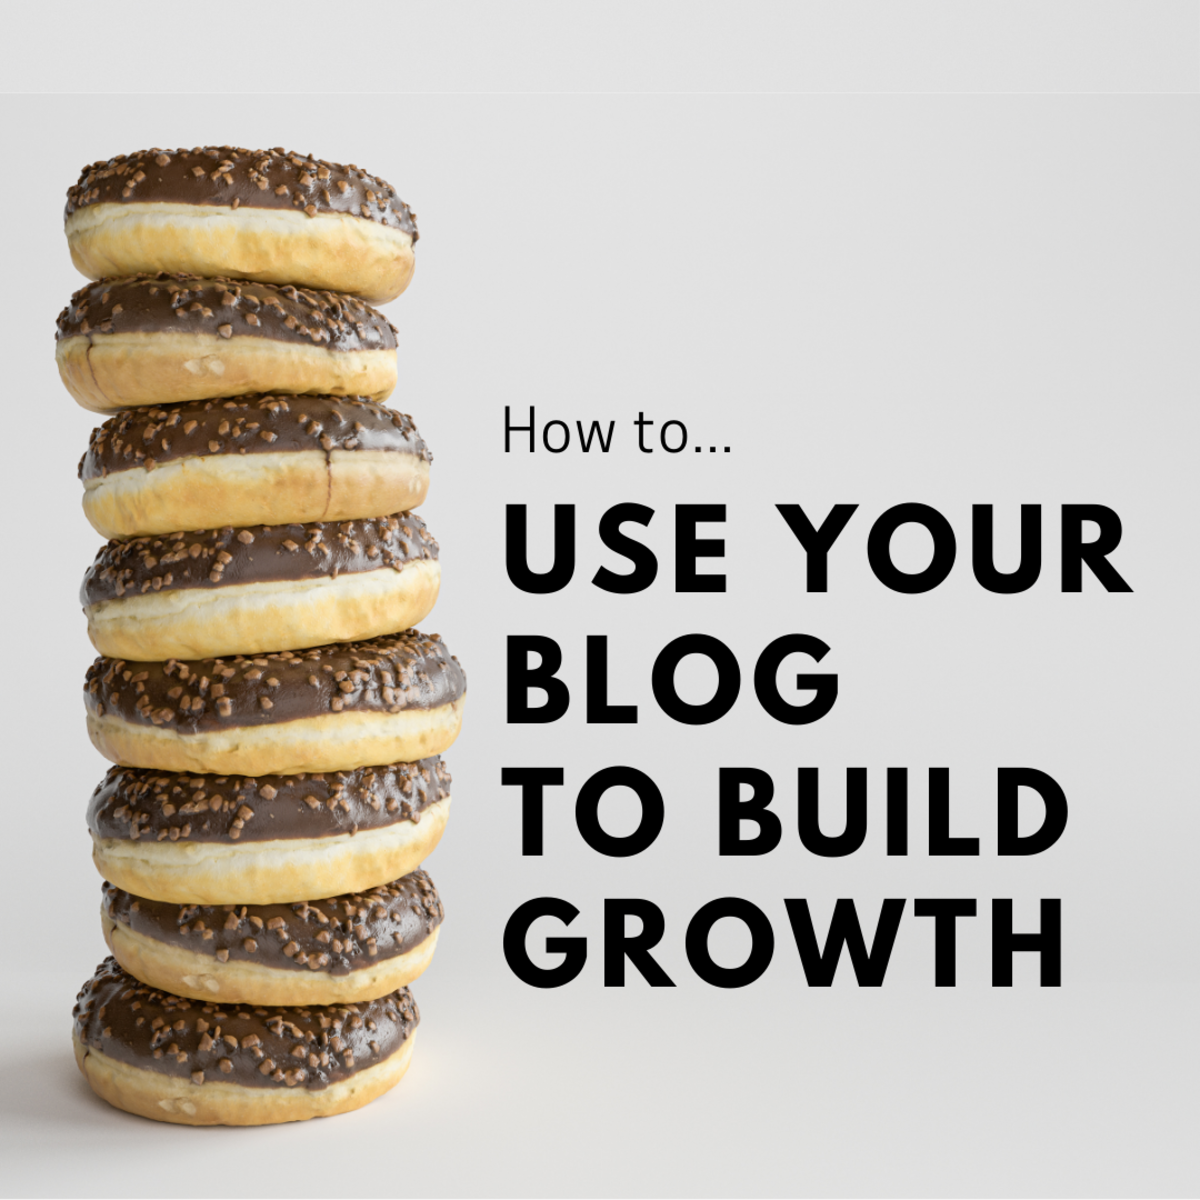 How to Use your Blog to Build Growth